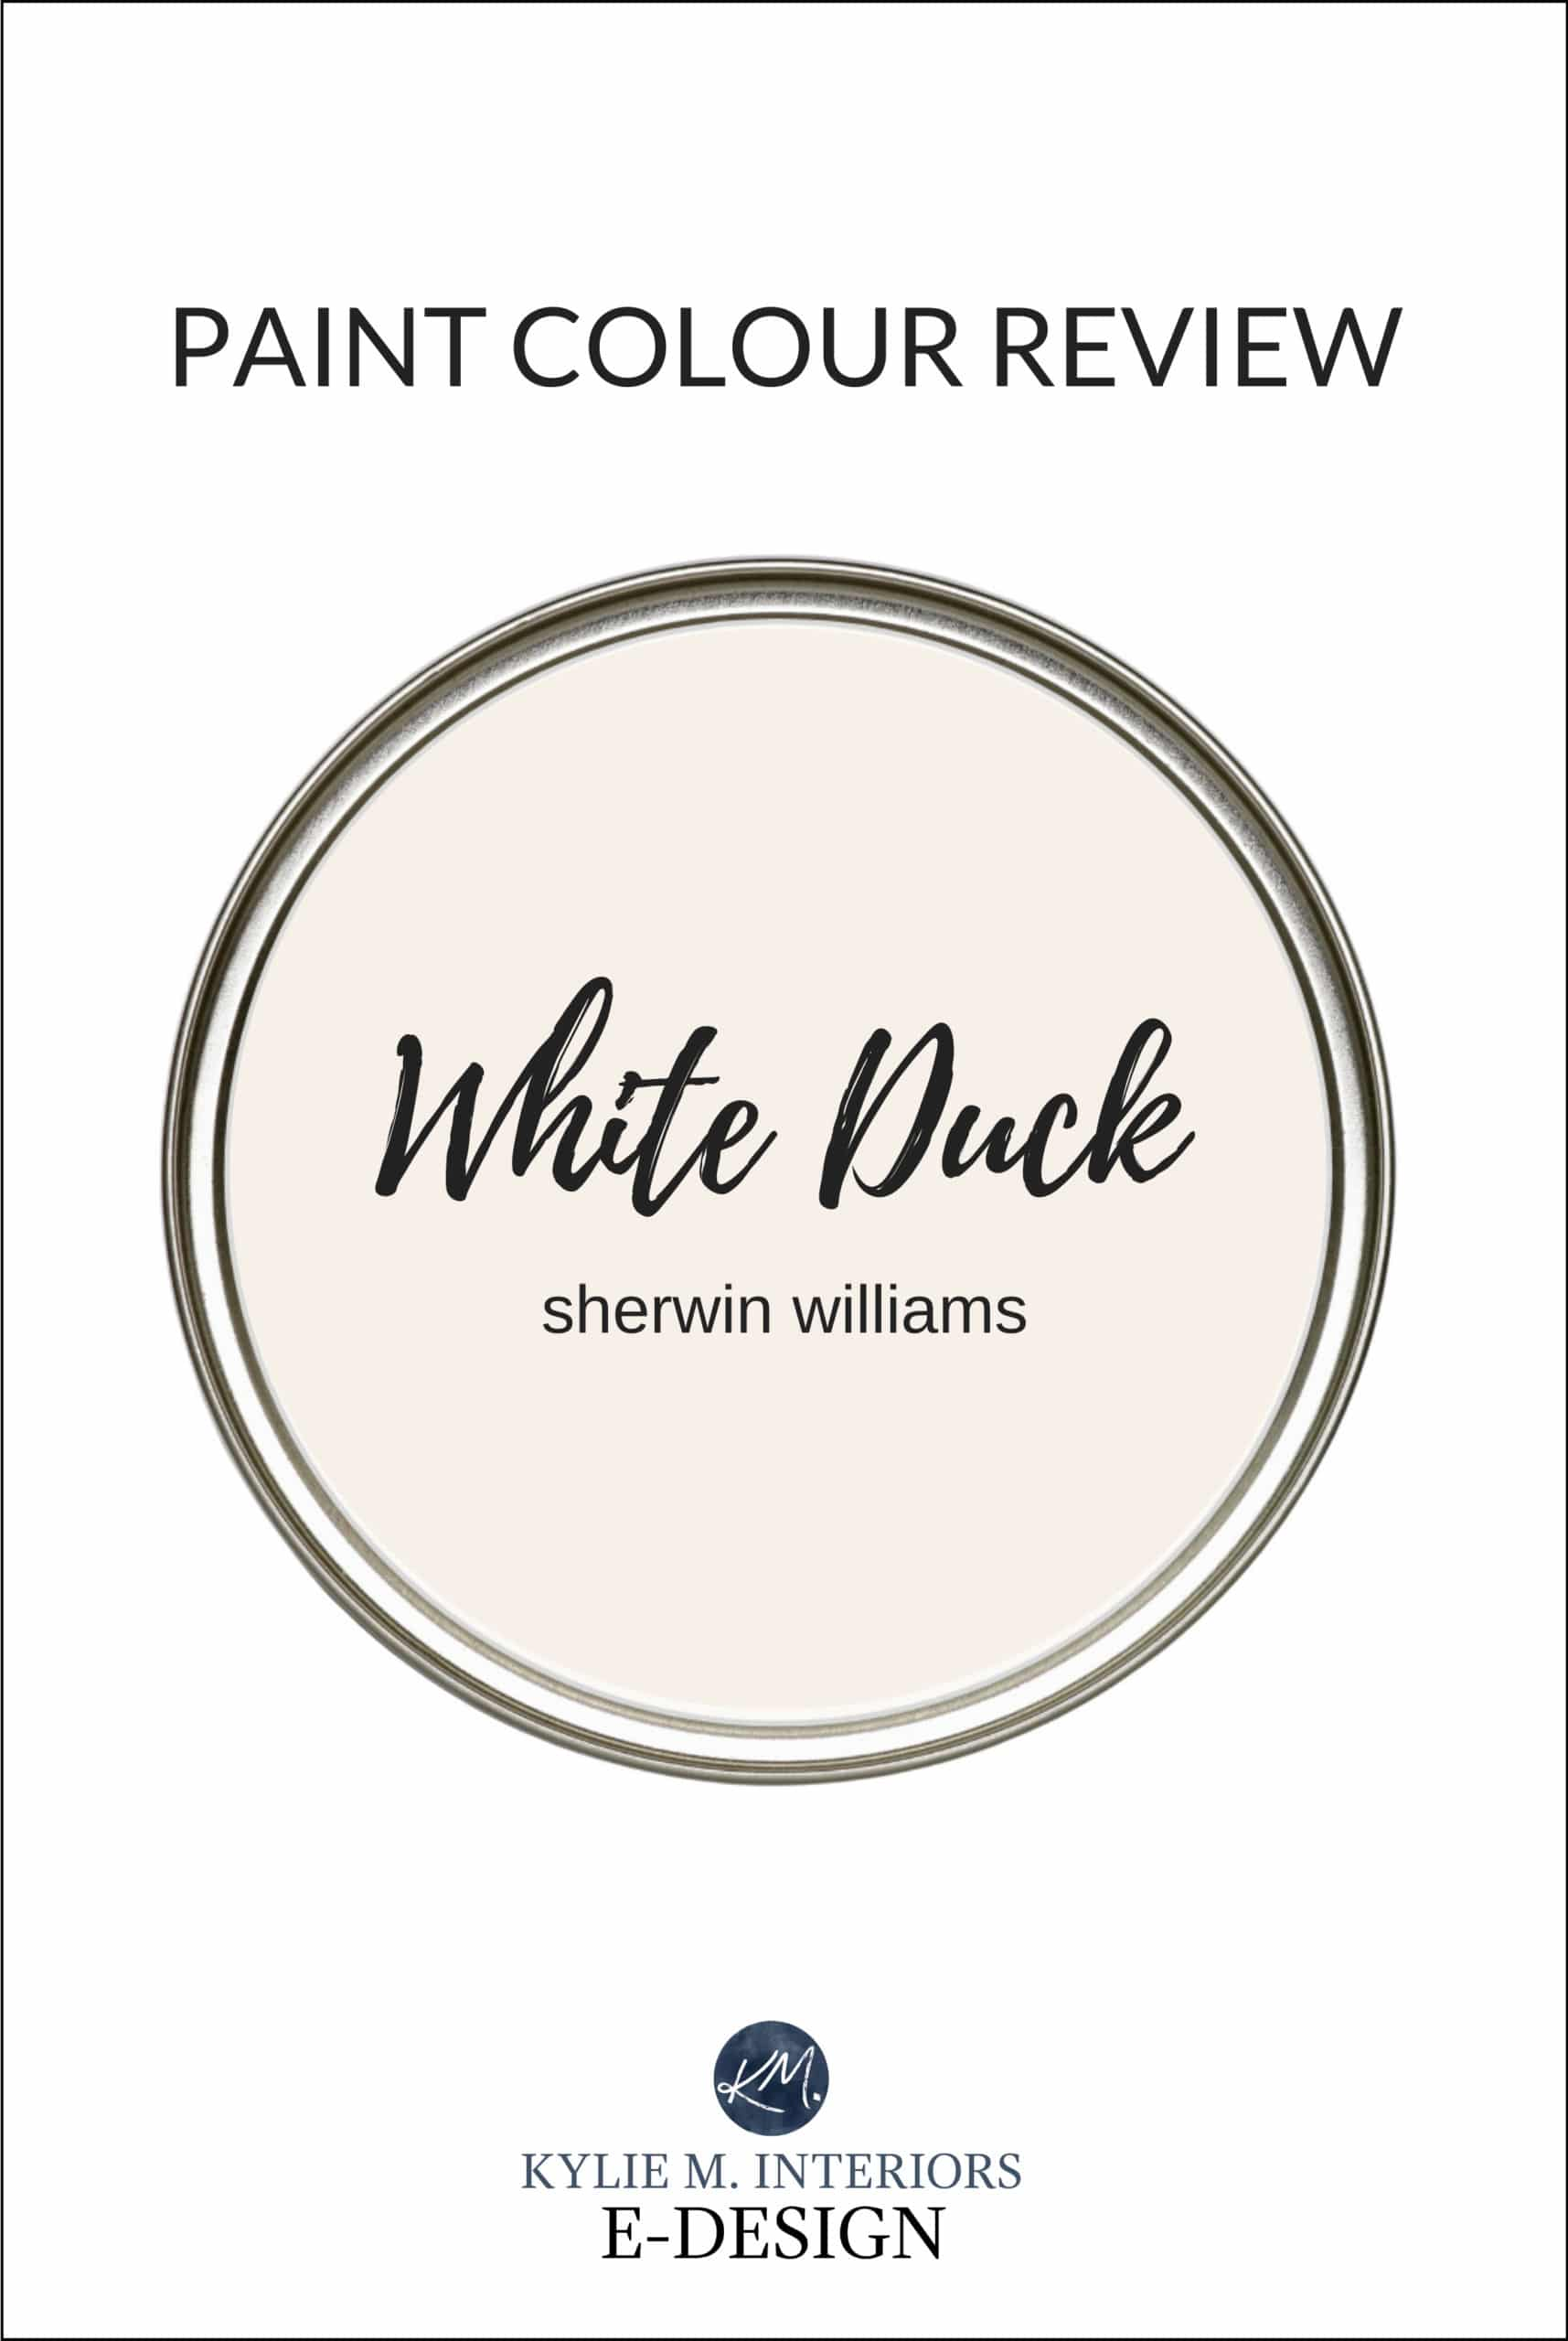 Paint Colour Review Sherwin Williams White Duck Sw 7010 Kylie M Interiors